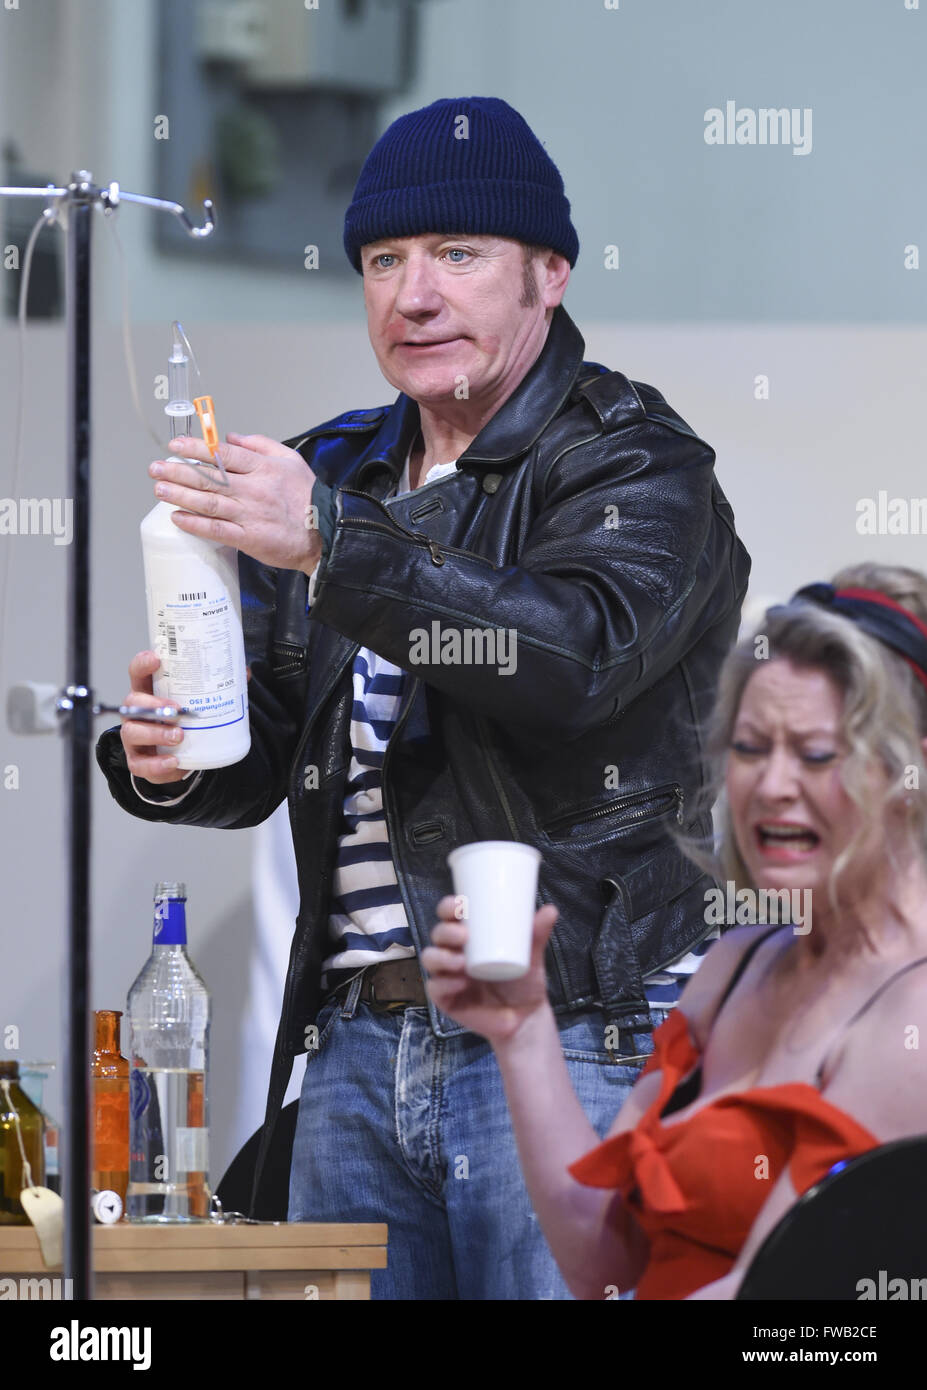 Berlin, Germany. 29th Mar, 2016. Actors Joerg Schuettauf (McMurphy, r) and Anne Rathsfeld (Candy Starr) pictured - Stock Image